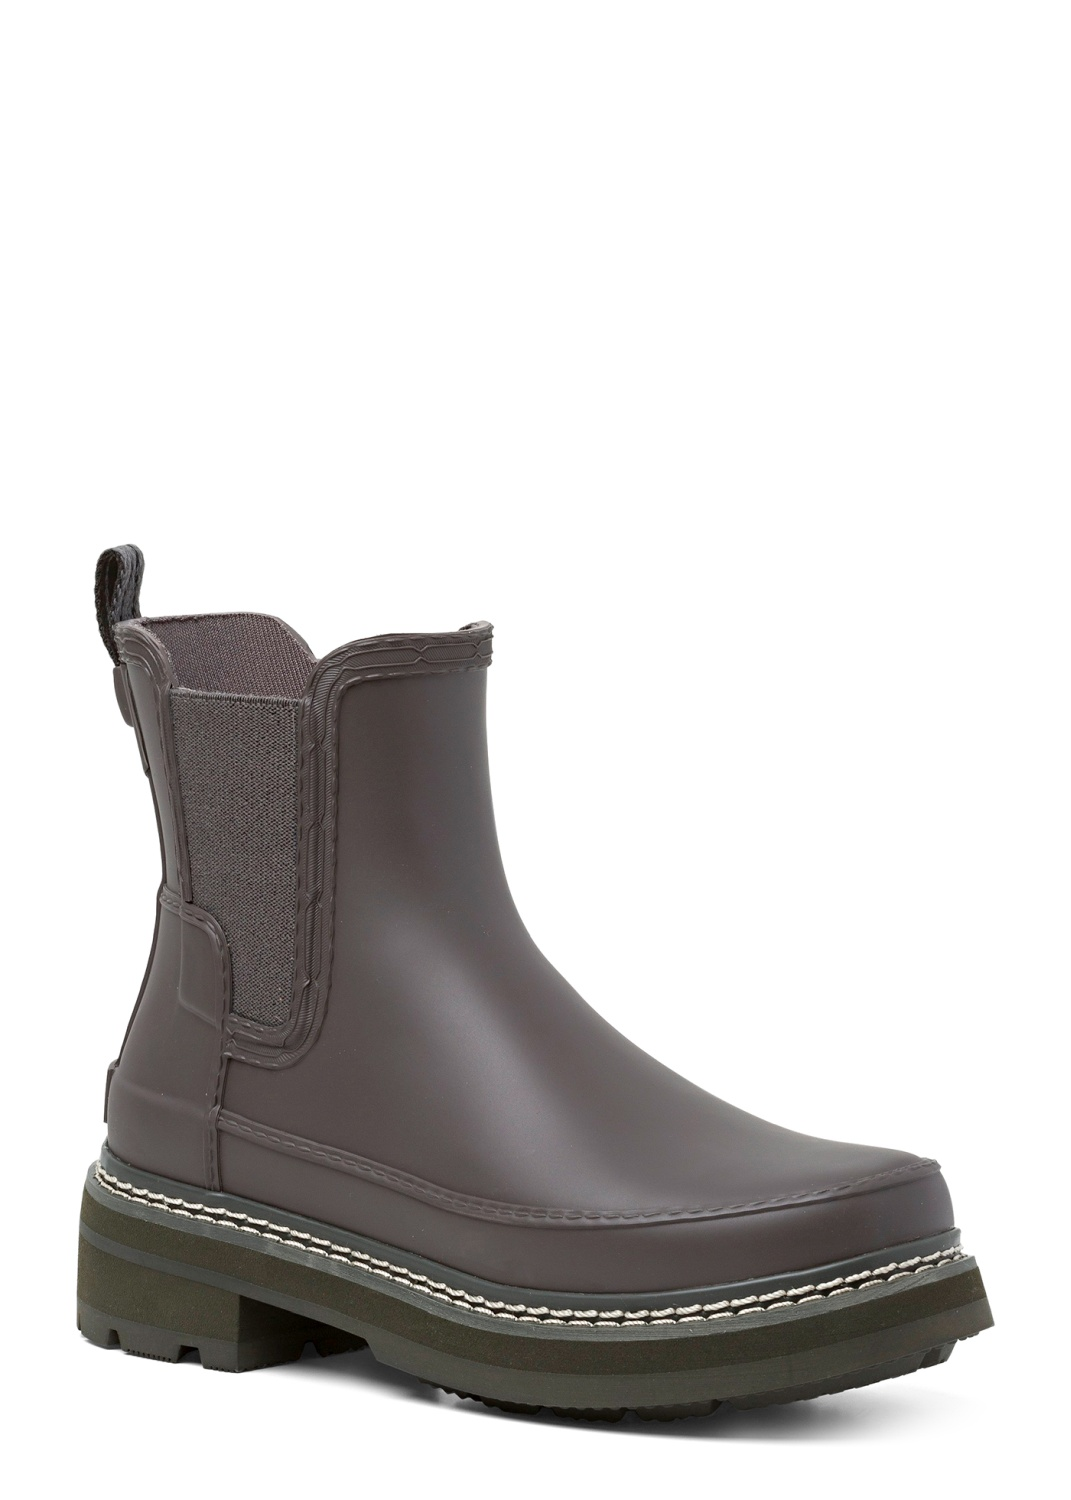 4_Refined Stitch Chelsea Boot image number 1